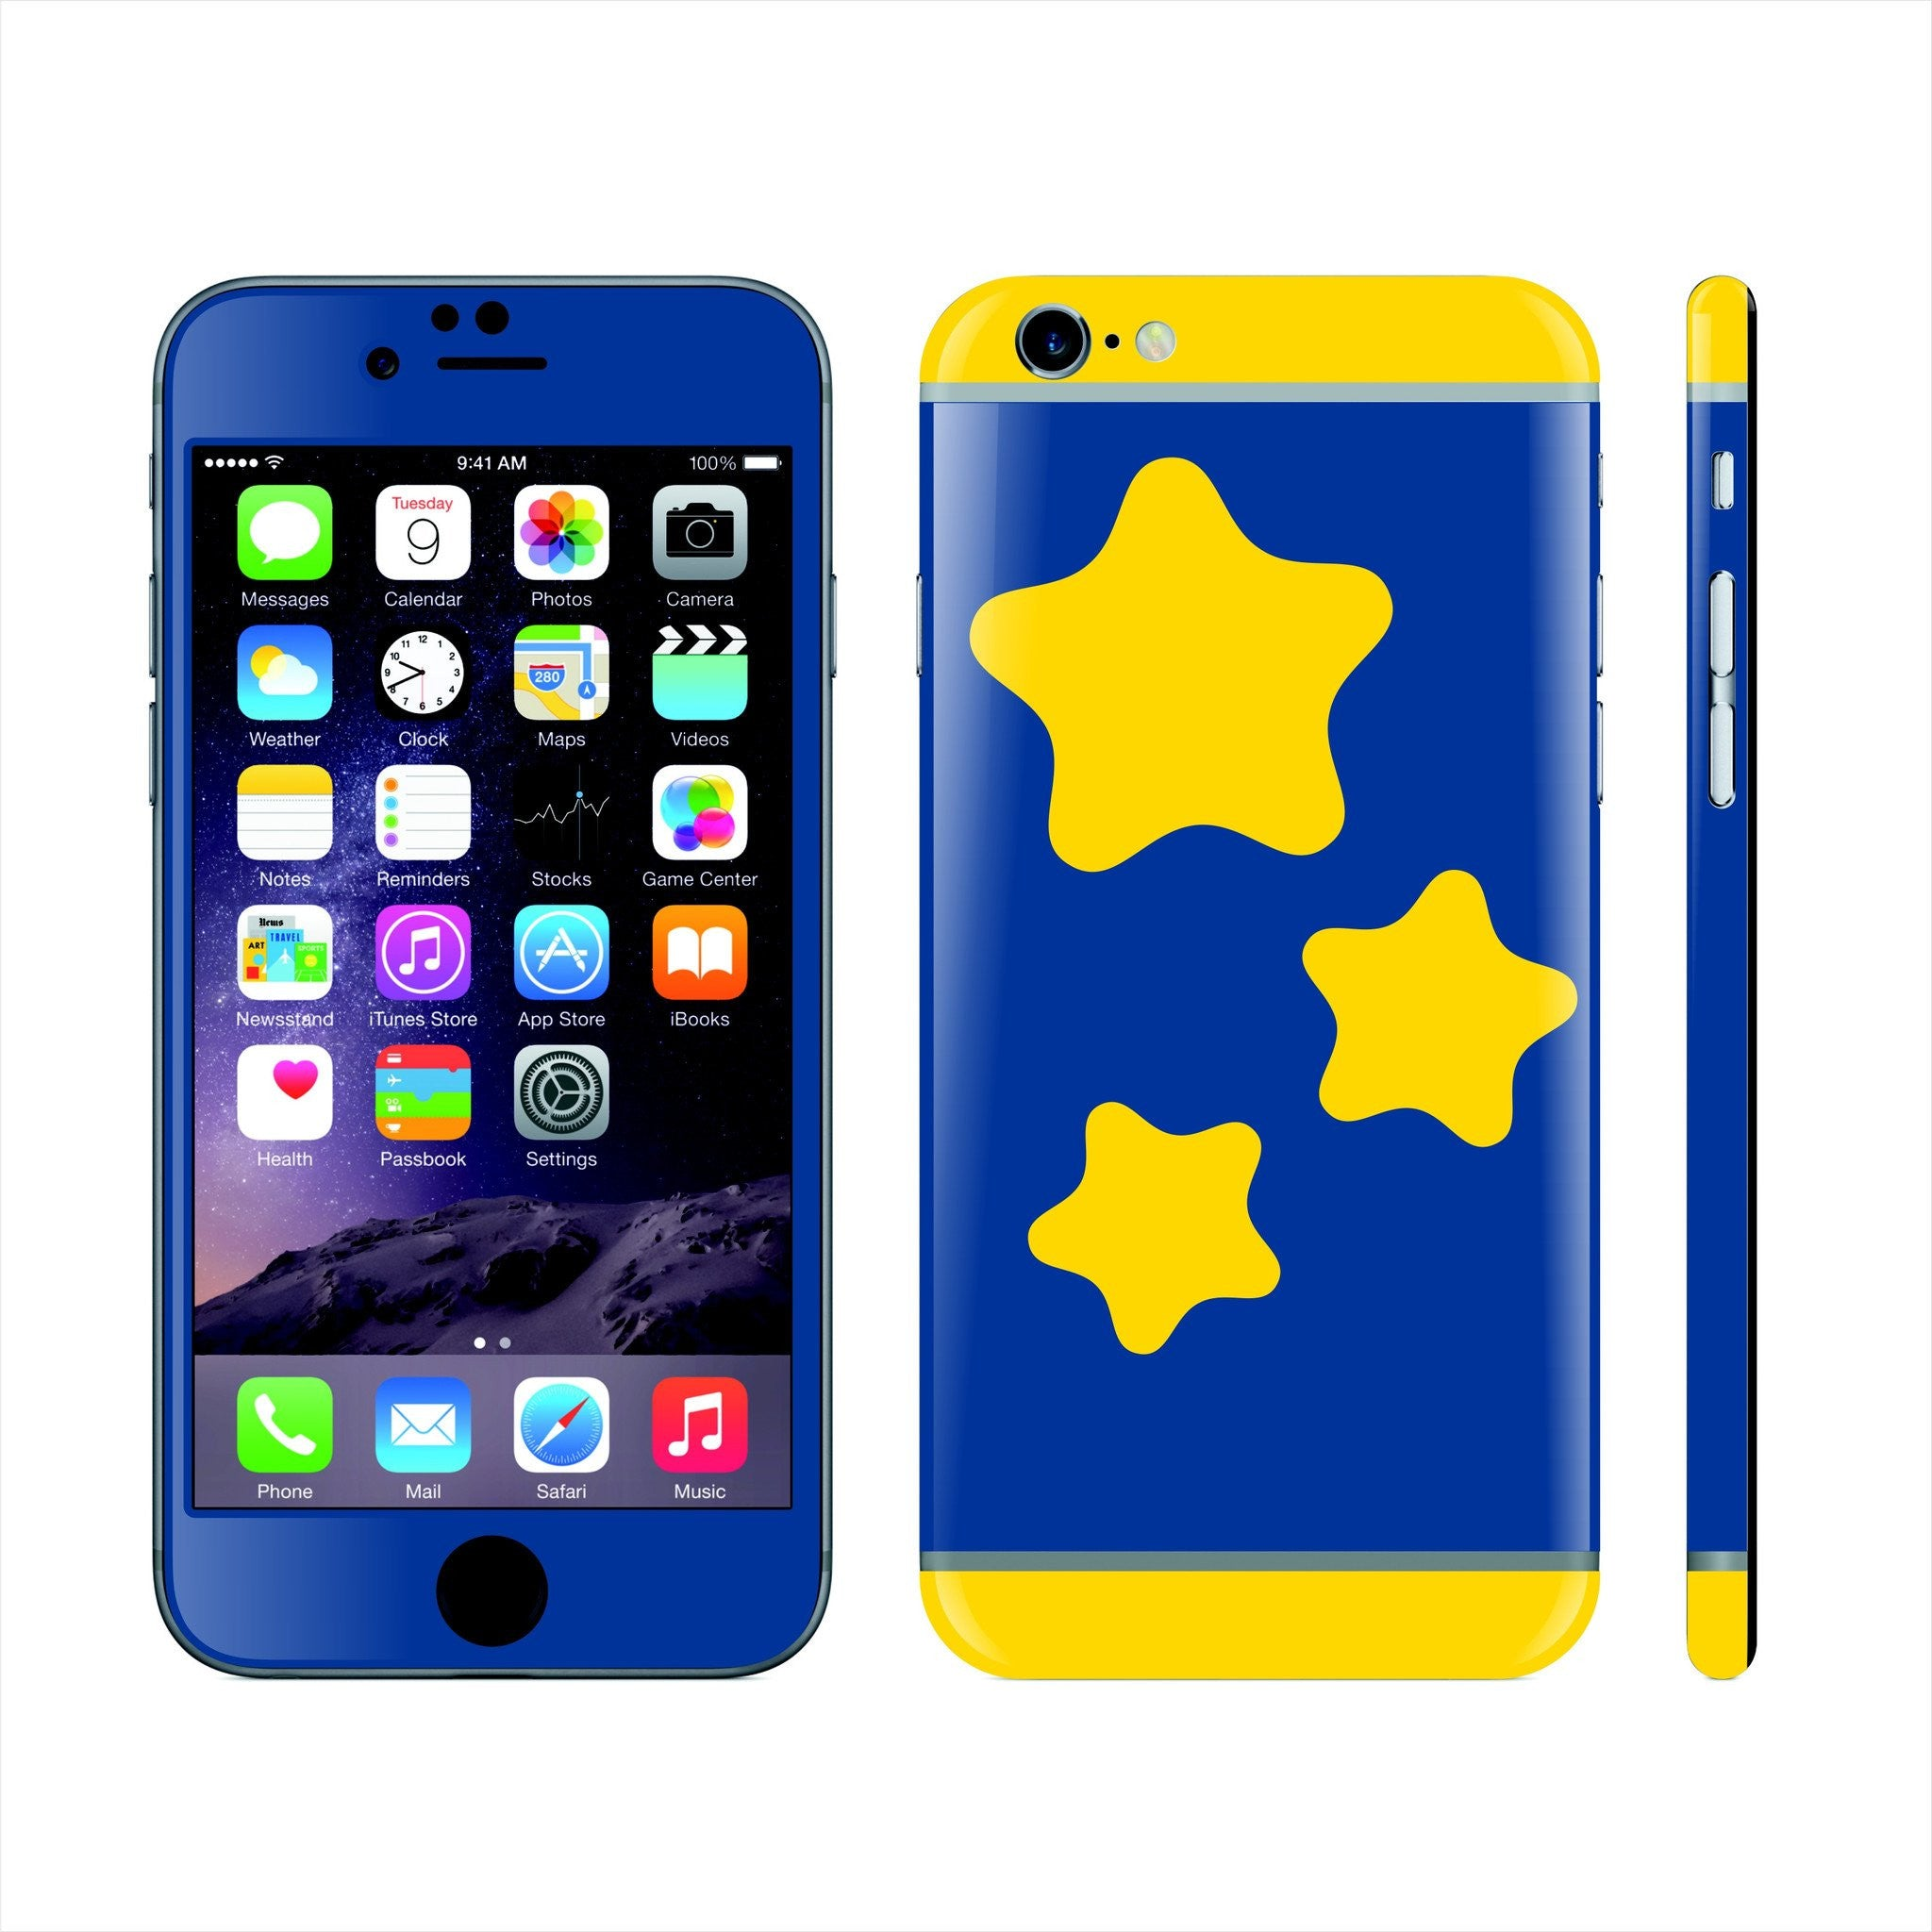 iPhone 6 Plus Custom Colorful Design Edition  Stars 022 Skin Wrap Sticker Cover Decal Protector by EasySkinz